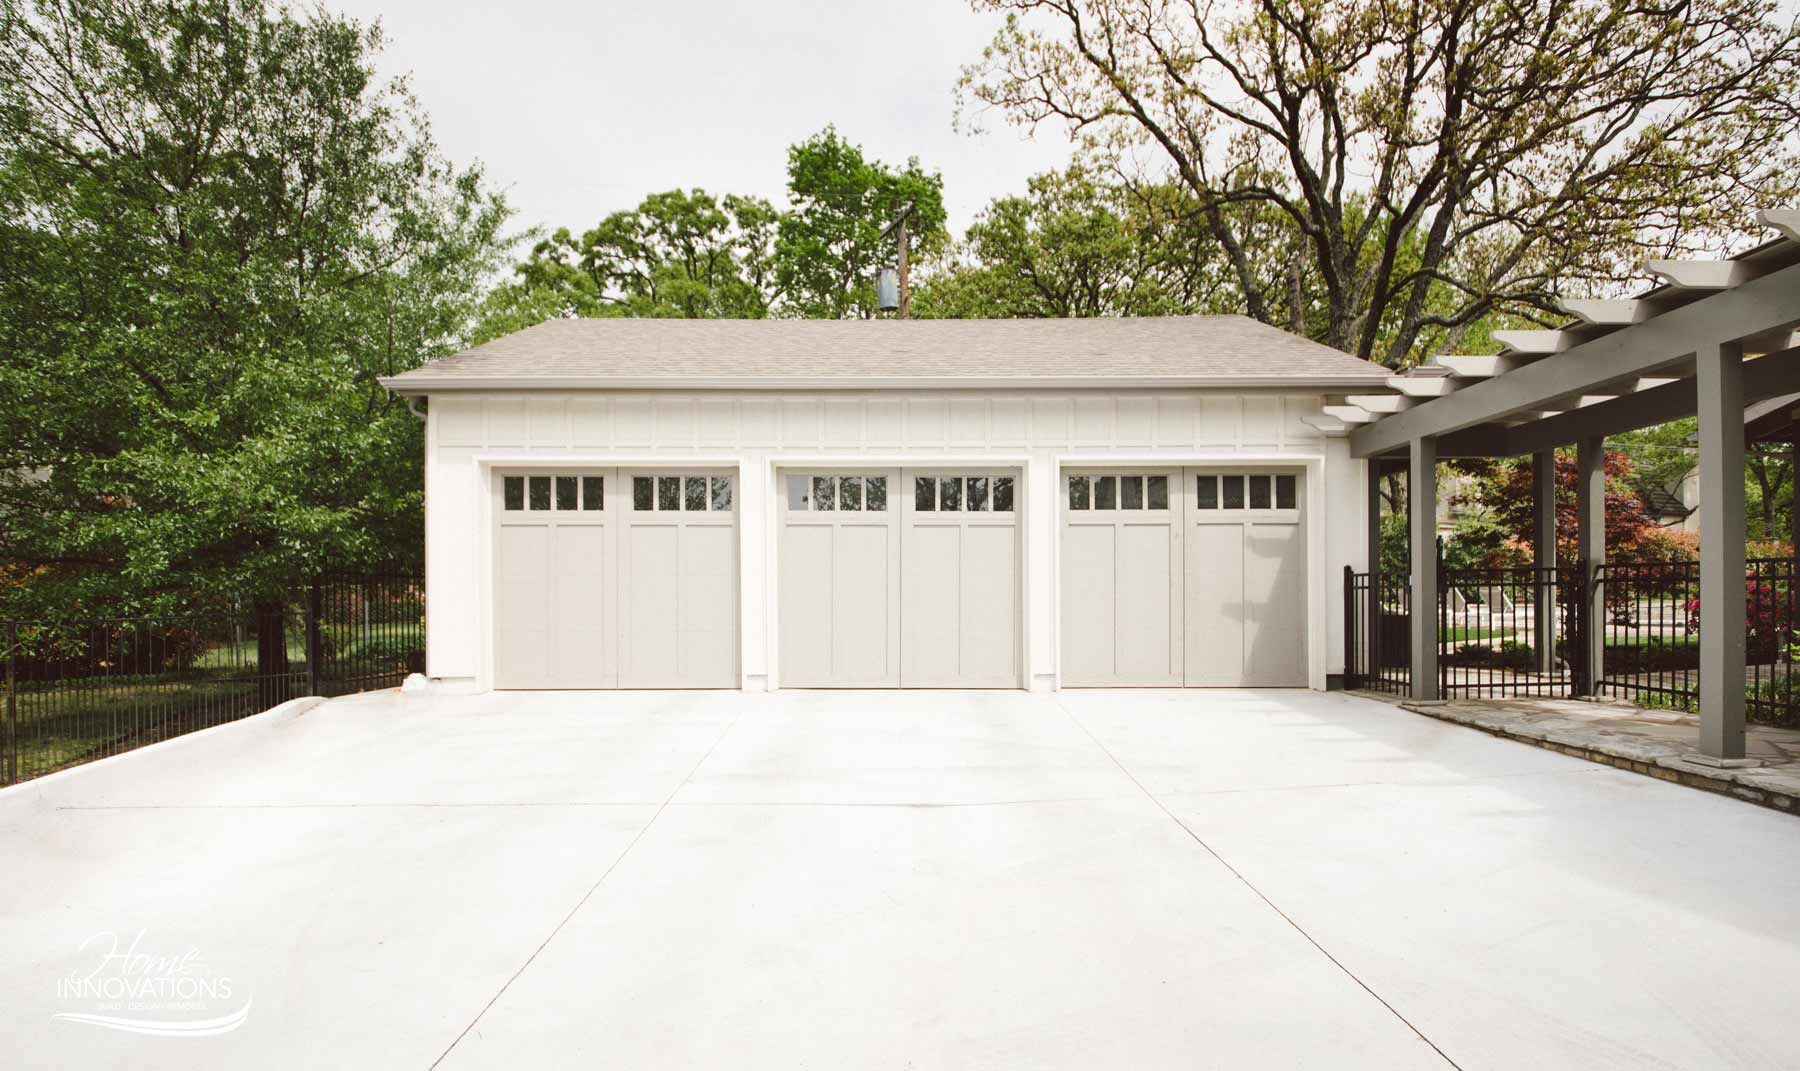 3 car detached garage addition with covered